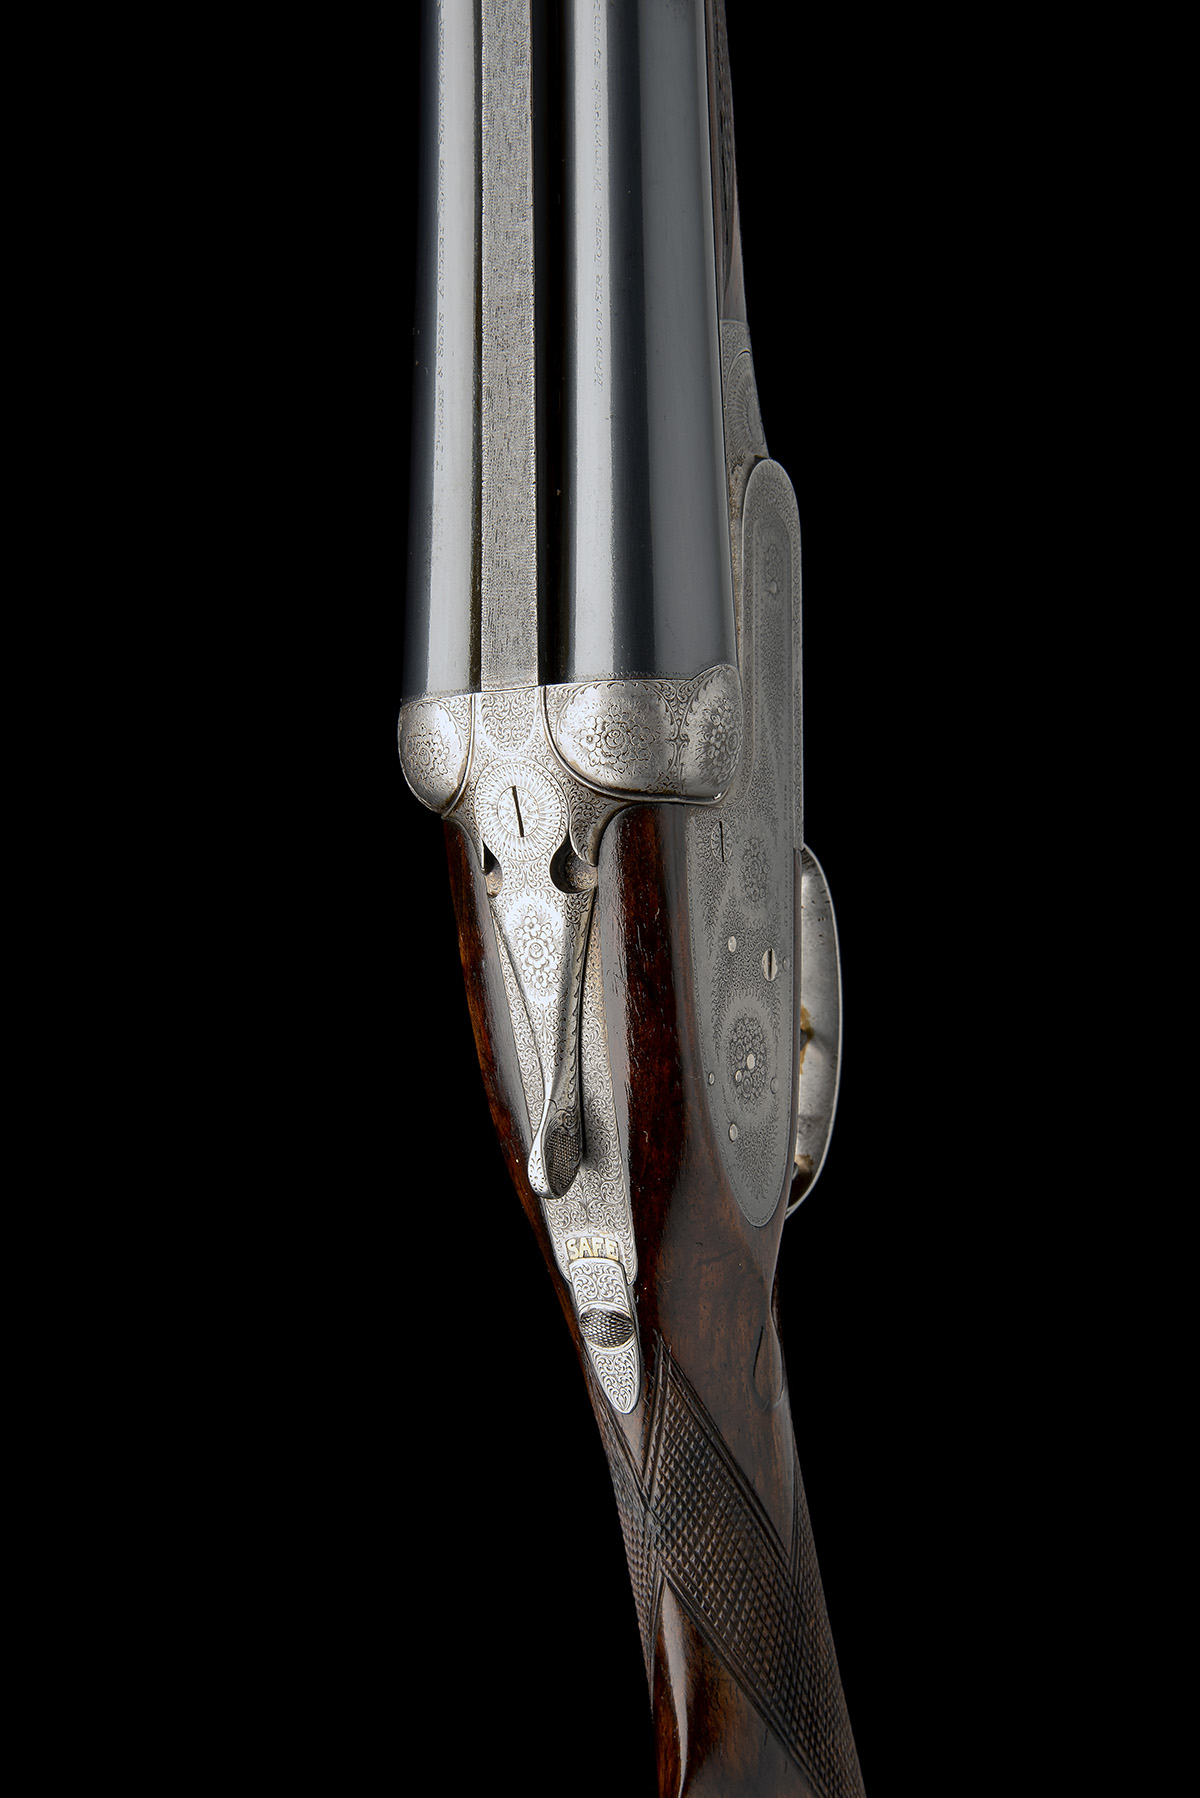 J. PURDEY & SONS A 12-BORE SELF-OPENING SIDELOCK EJECTOR LIVE PIGEON GUN, serial no. 21119, with - Image 4 of 9